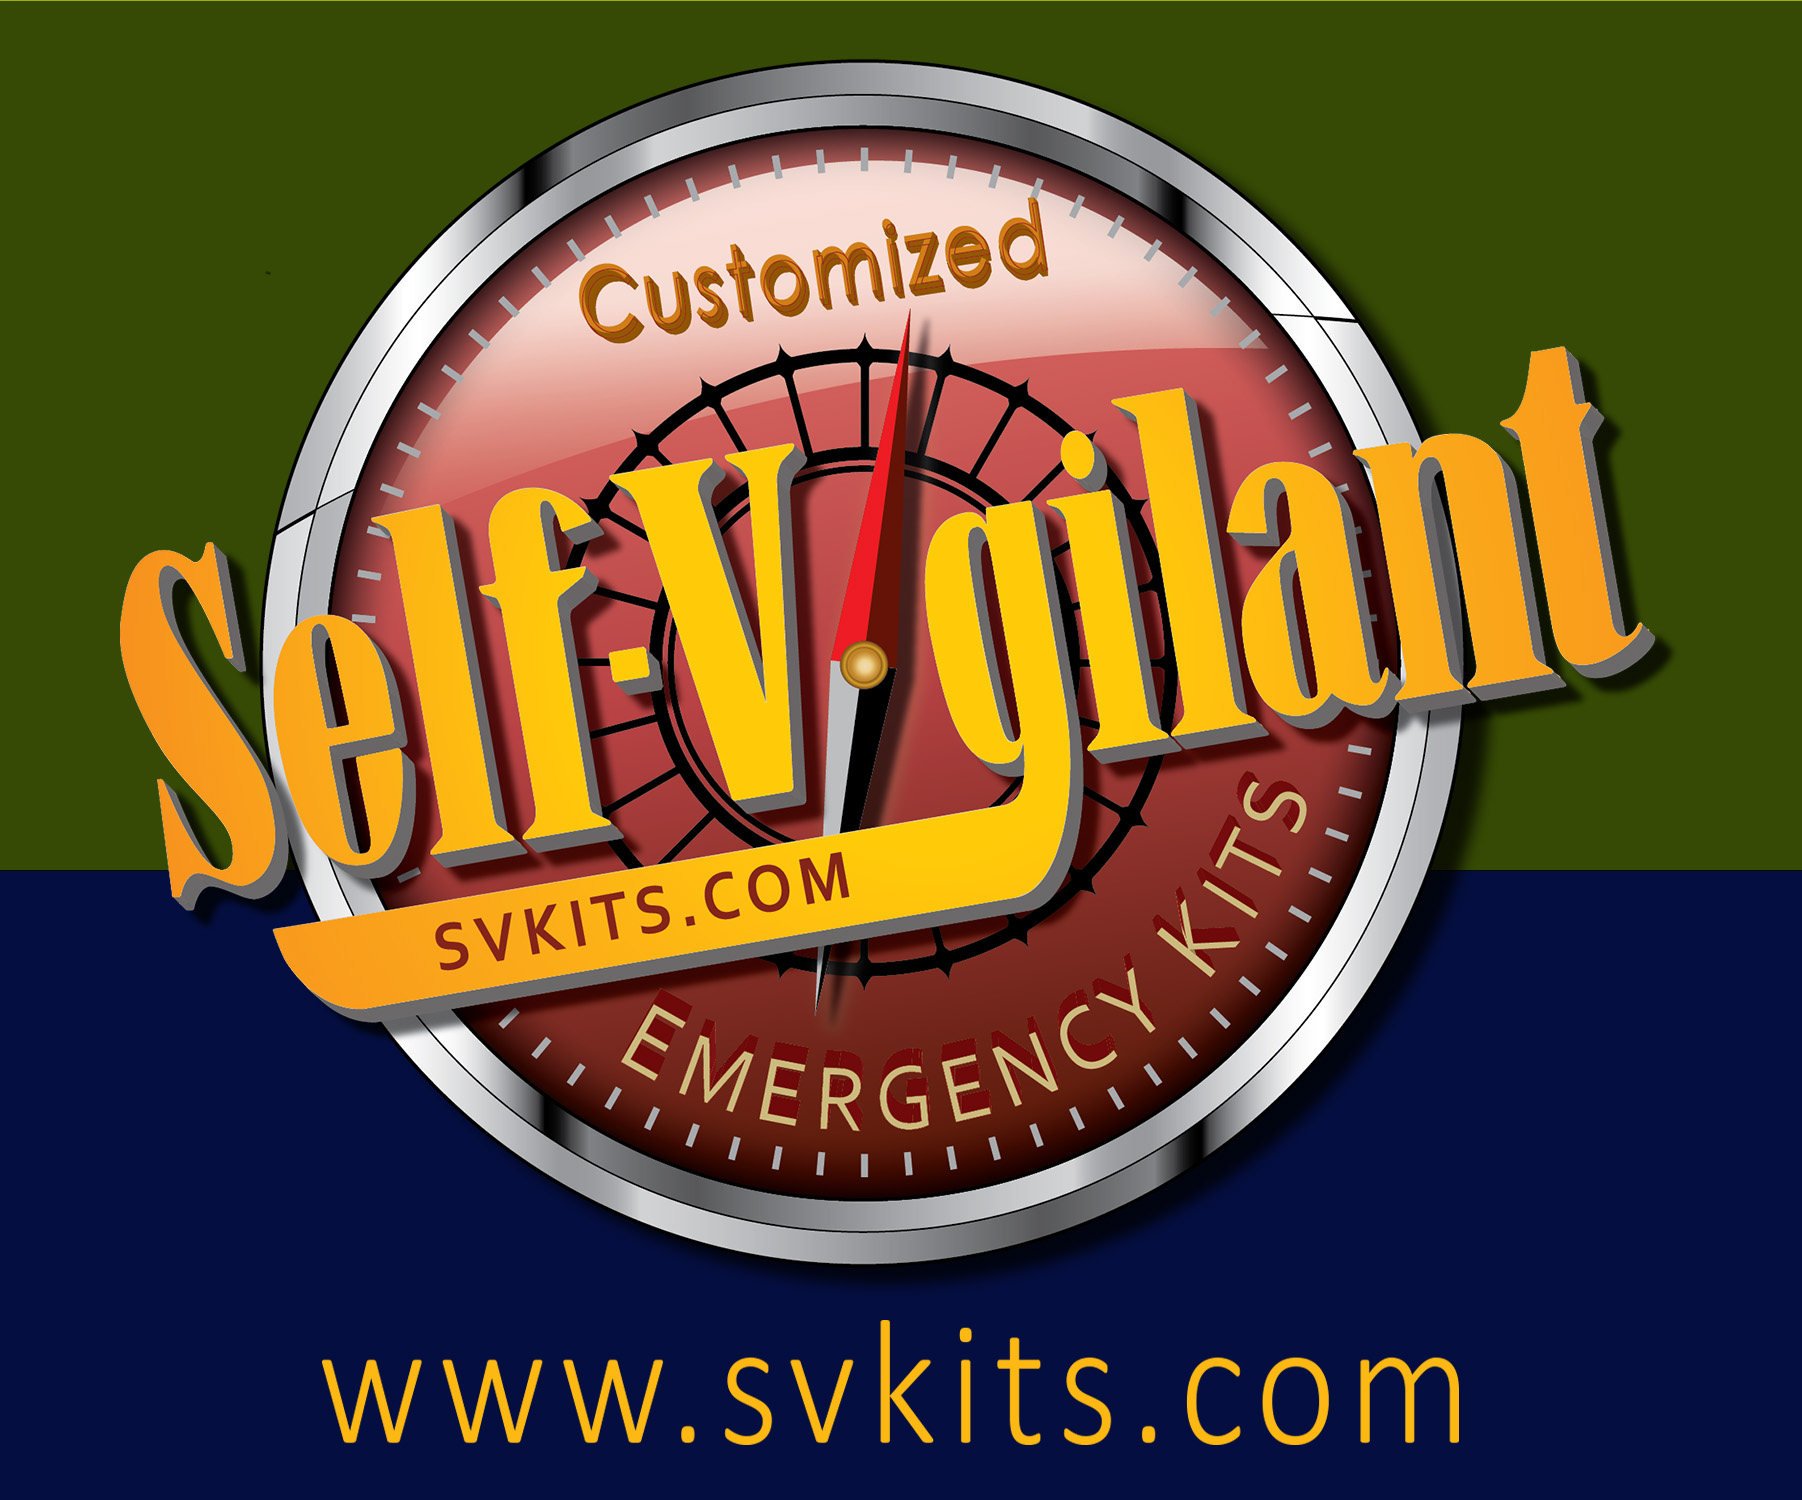 Self_Vigilant Logo